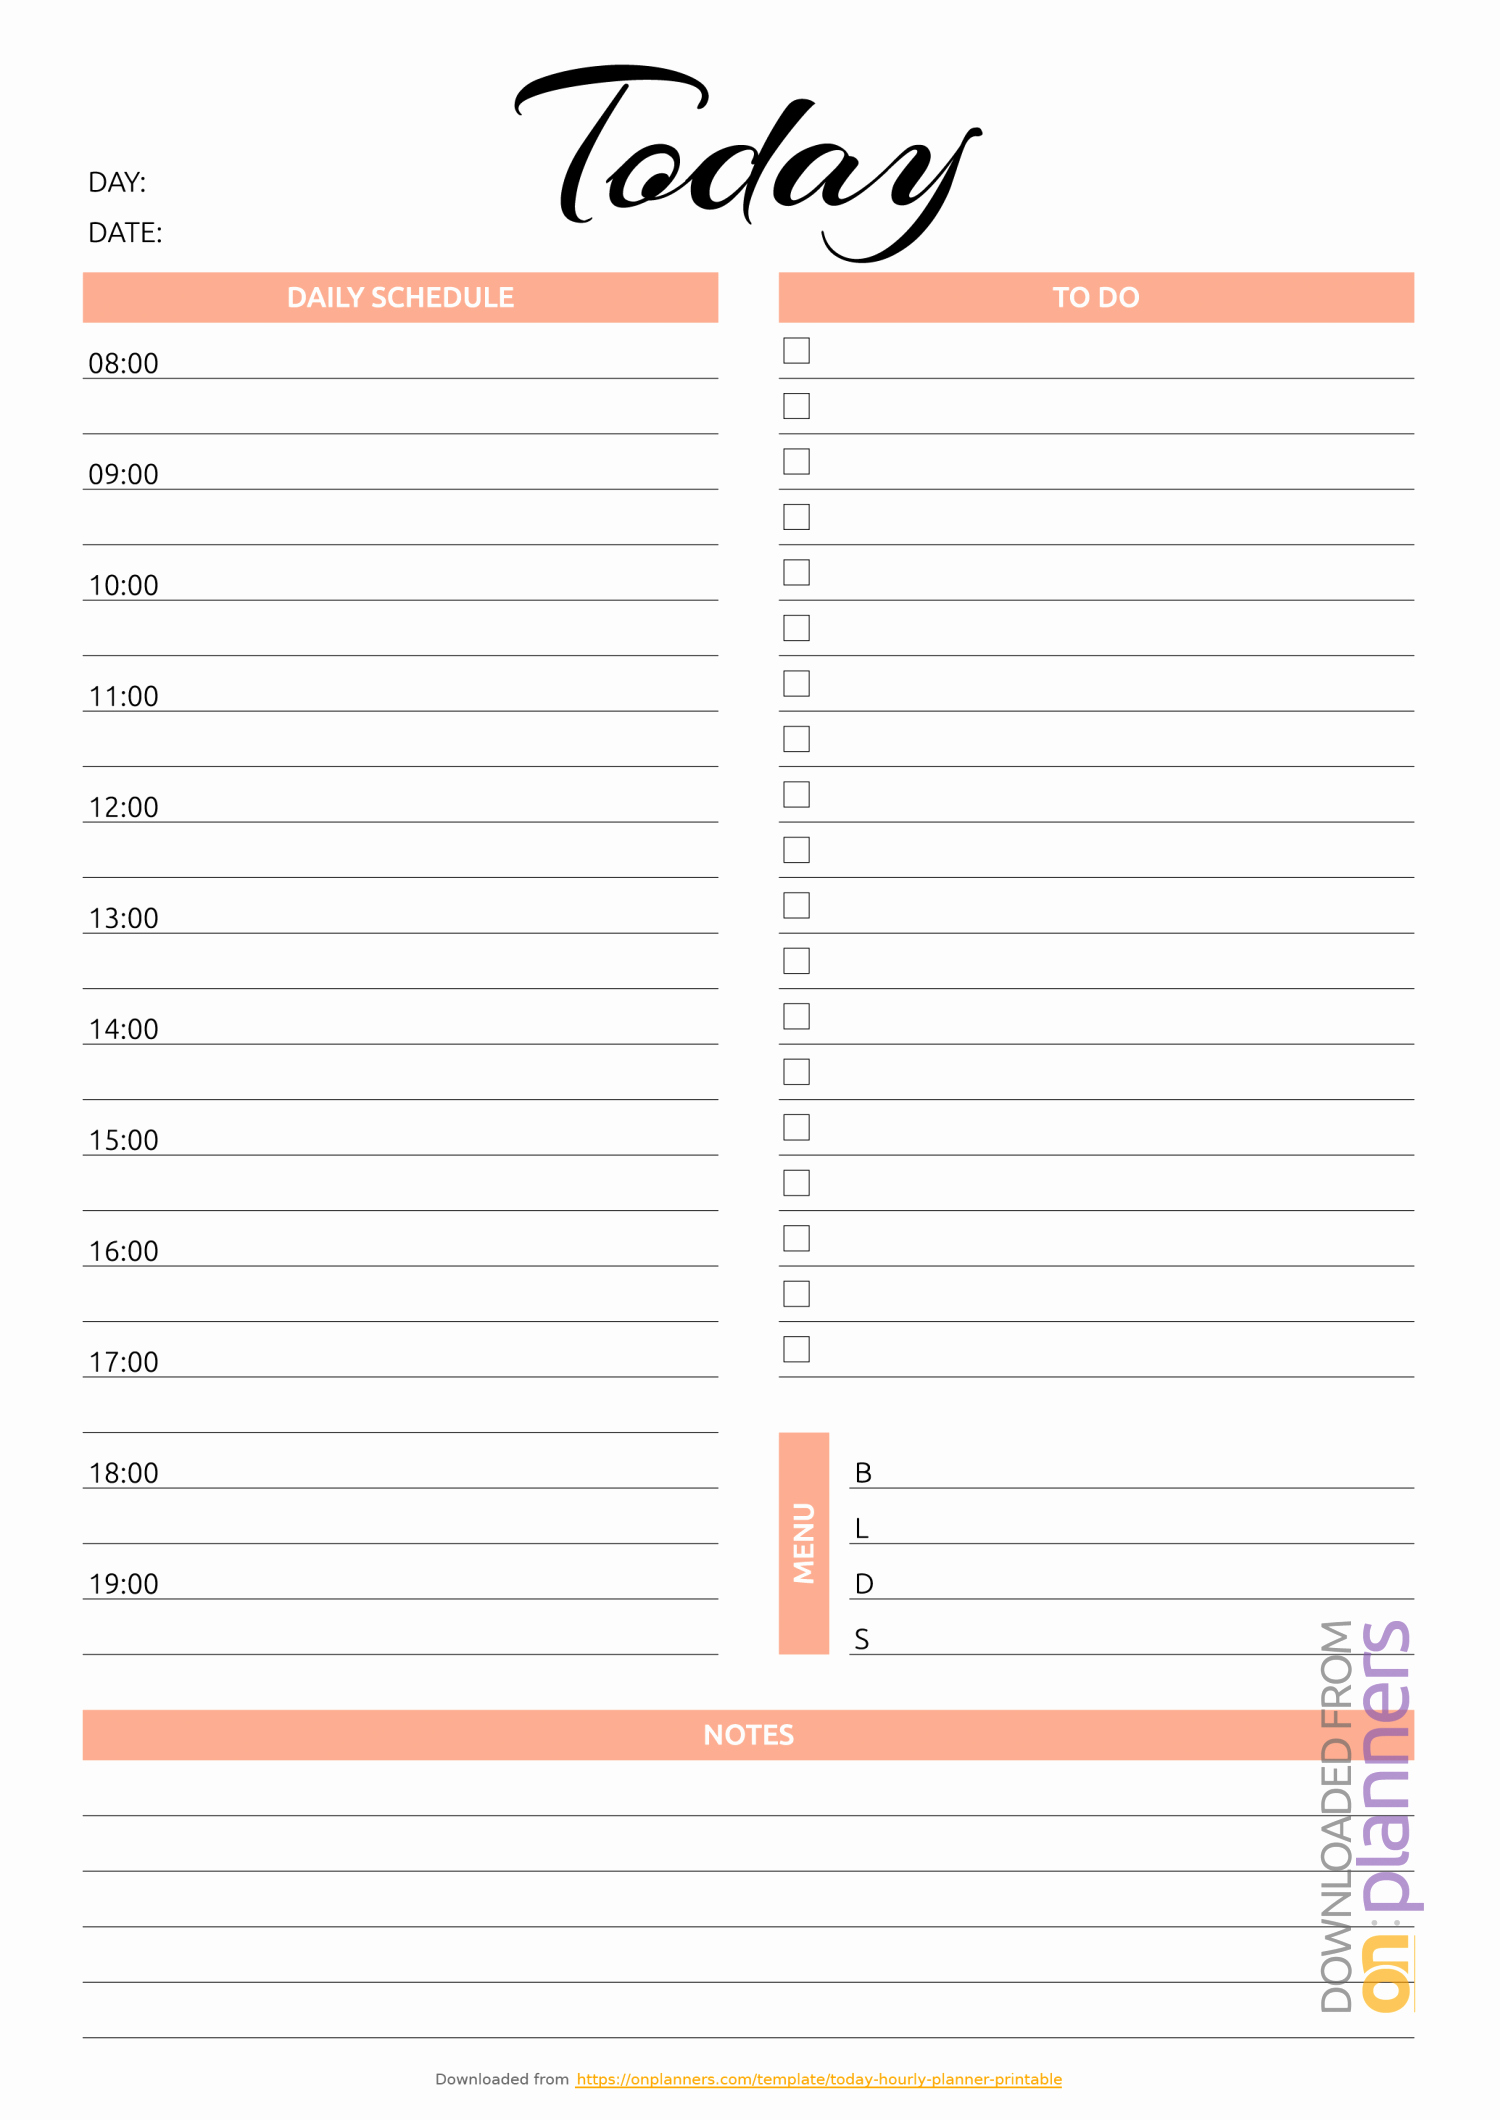 Printable Daily Schedule Template Elegant Daily Planner Templates Printable